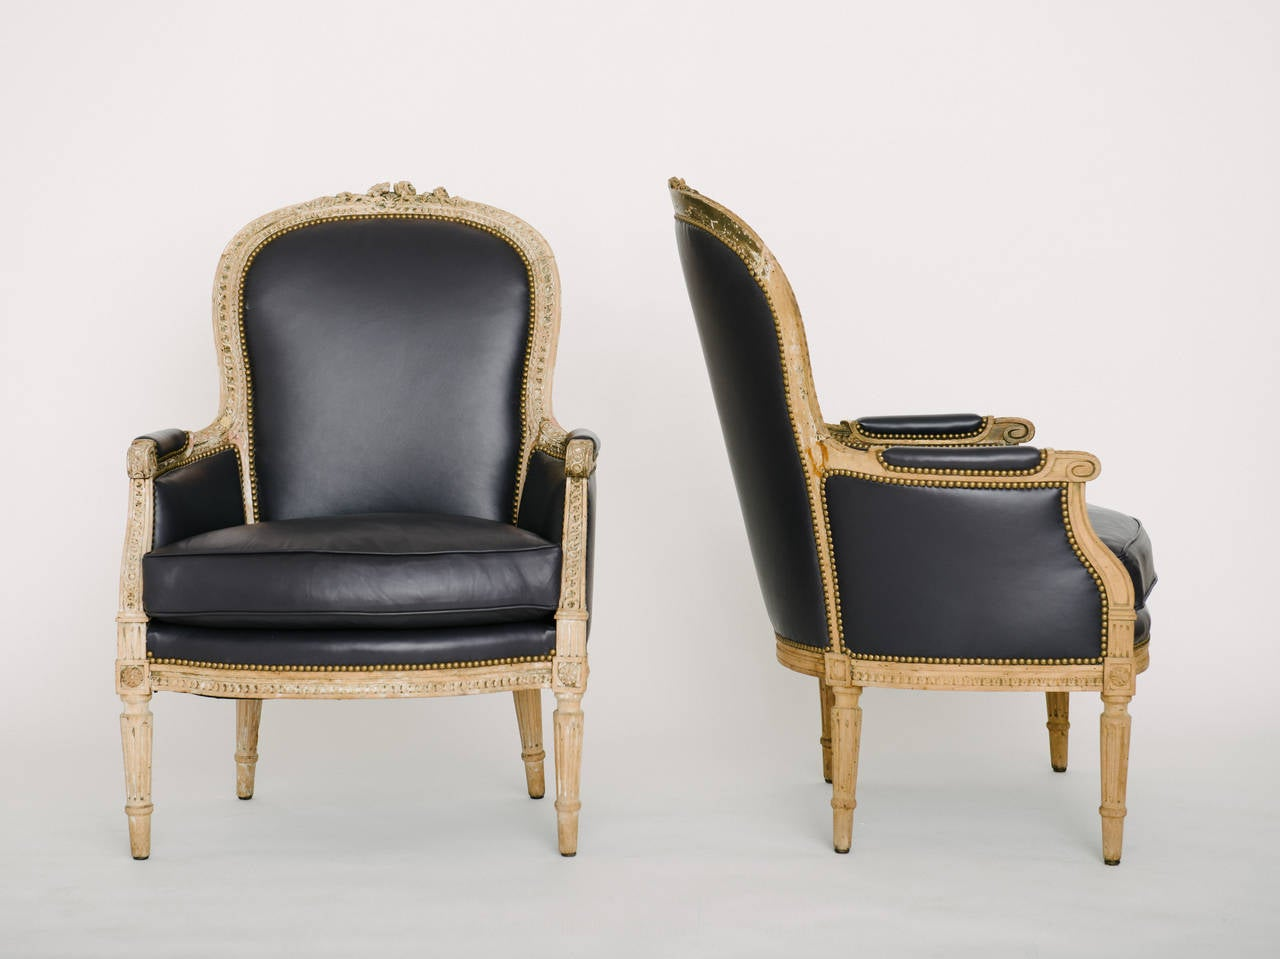 Pair 19th Century French Louis XVI style bergere chairs newly upholstered in blackberry lambskin leather.